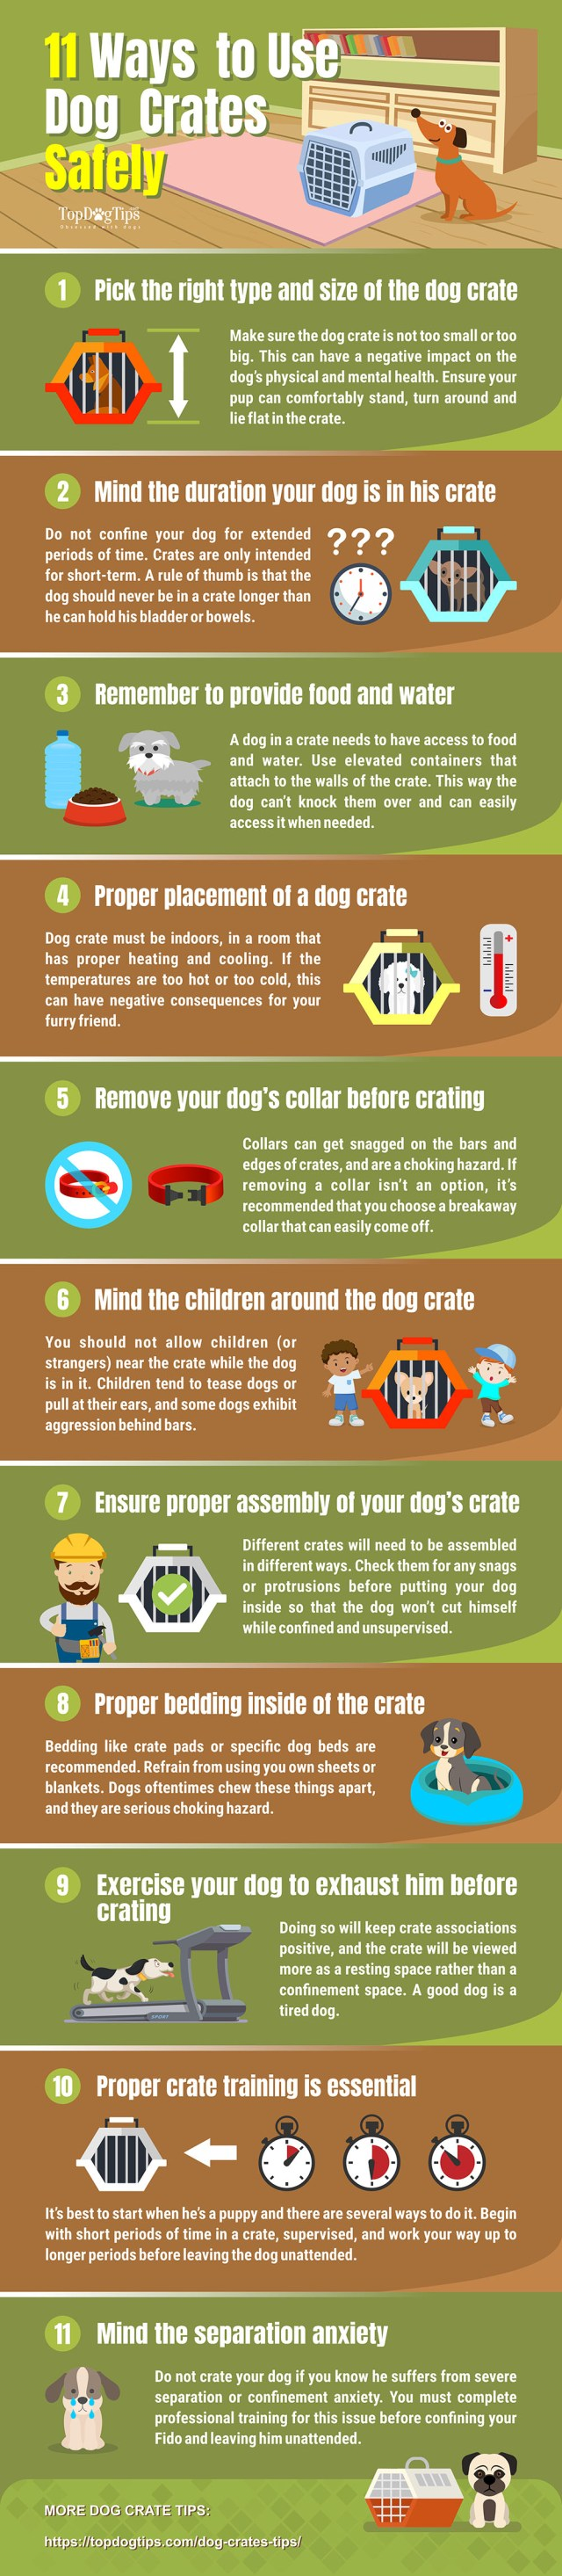 Dog Crate Safety Tips [Infographic]